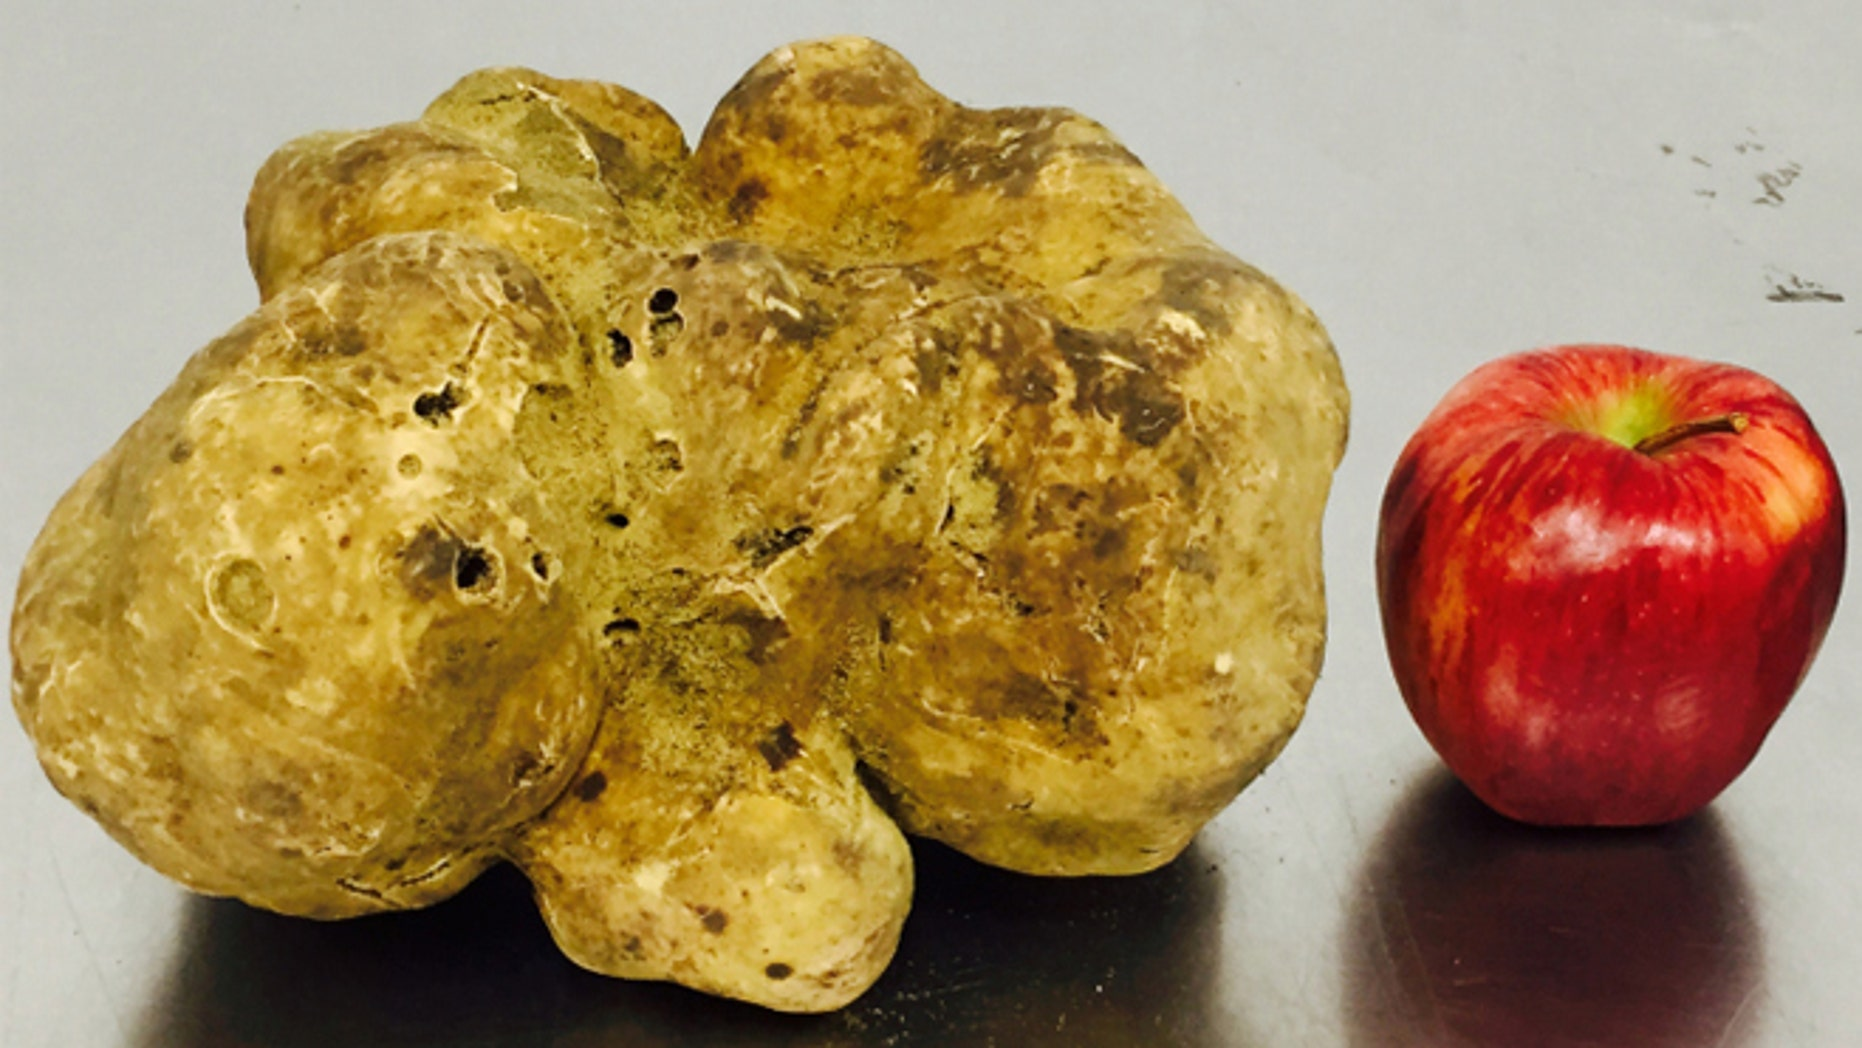 The record-setting 4.16-pound white truffle was found last week in Umbria, Italy and is scheduled to go on the auction block in New York on Saturday, December 6.